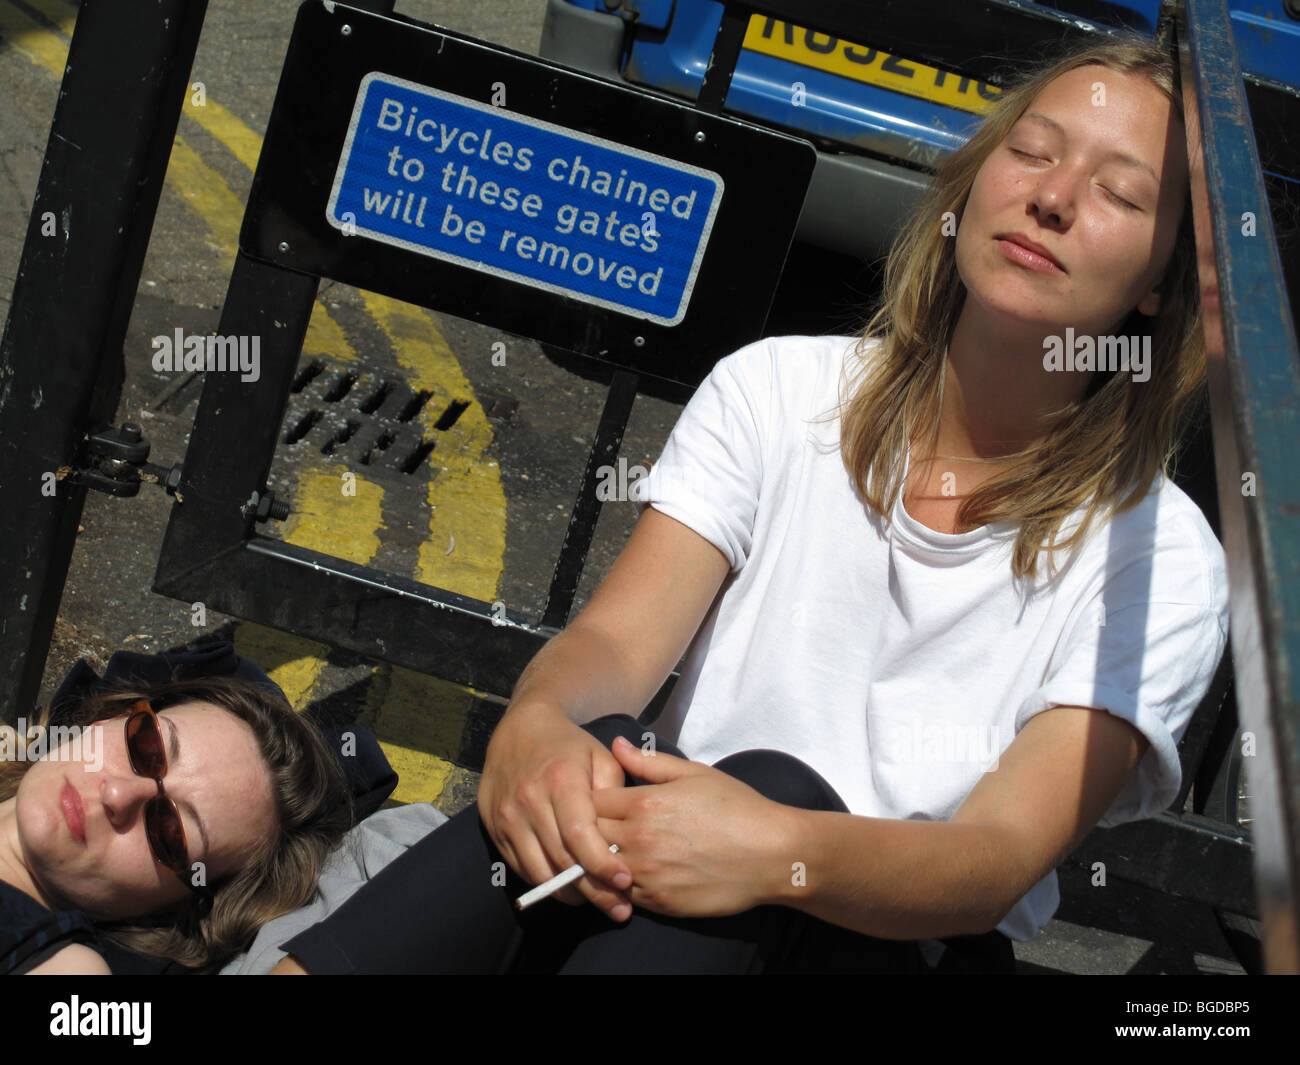 Broadway market , Hackney. Urban sunbathing. Two young women enjoy the sunshine. - Stock Image